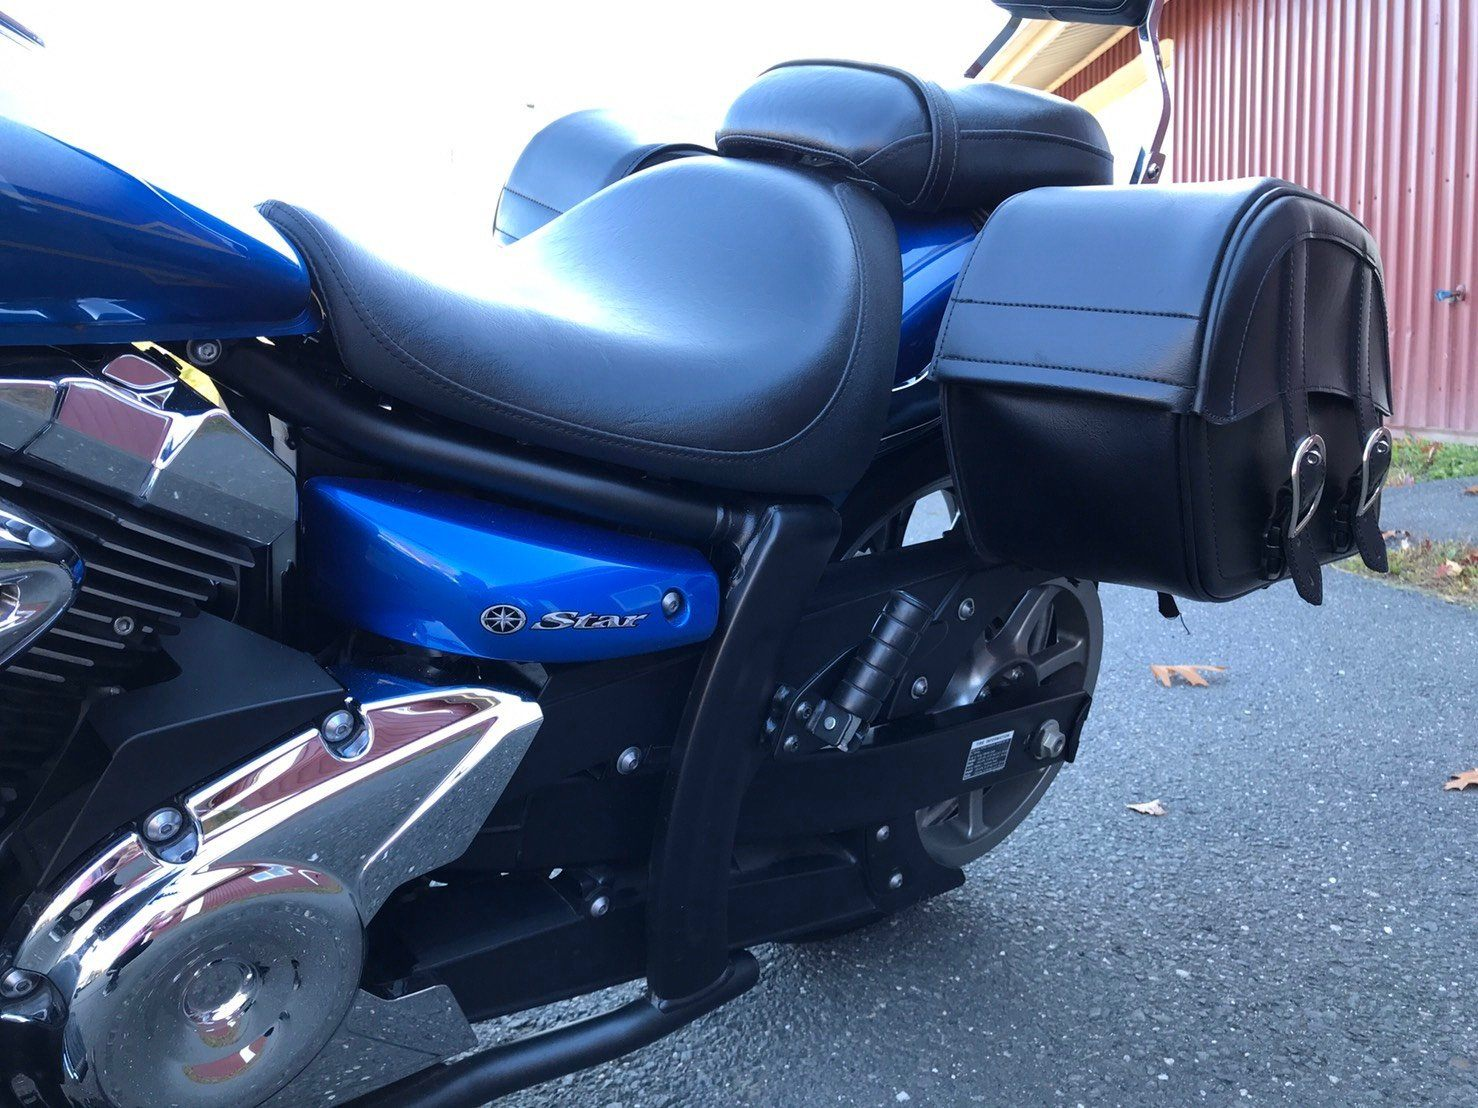 2009 Yamaha V Star 950 in Westfield, Massachusetts - Photo 6